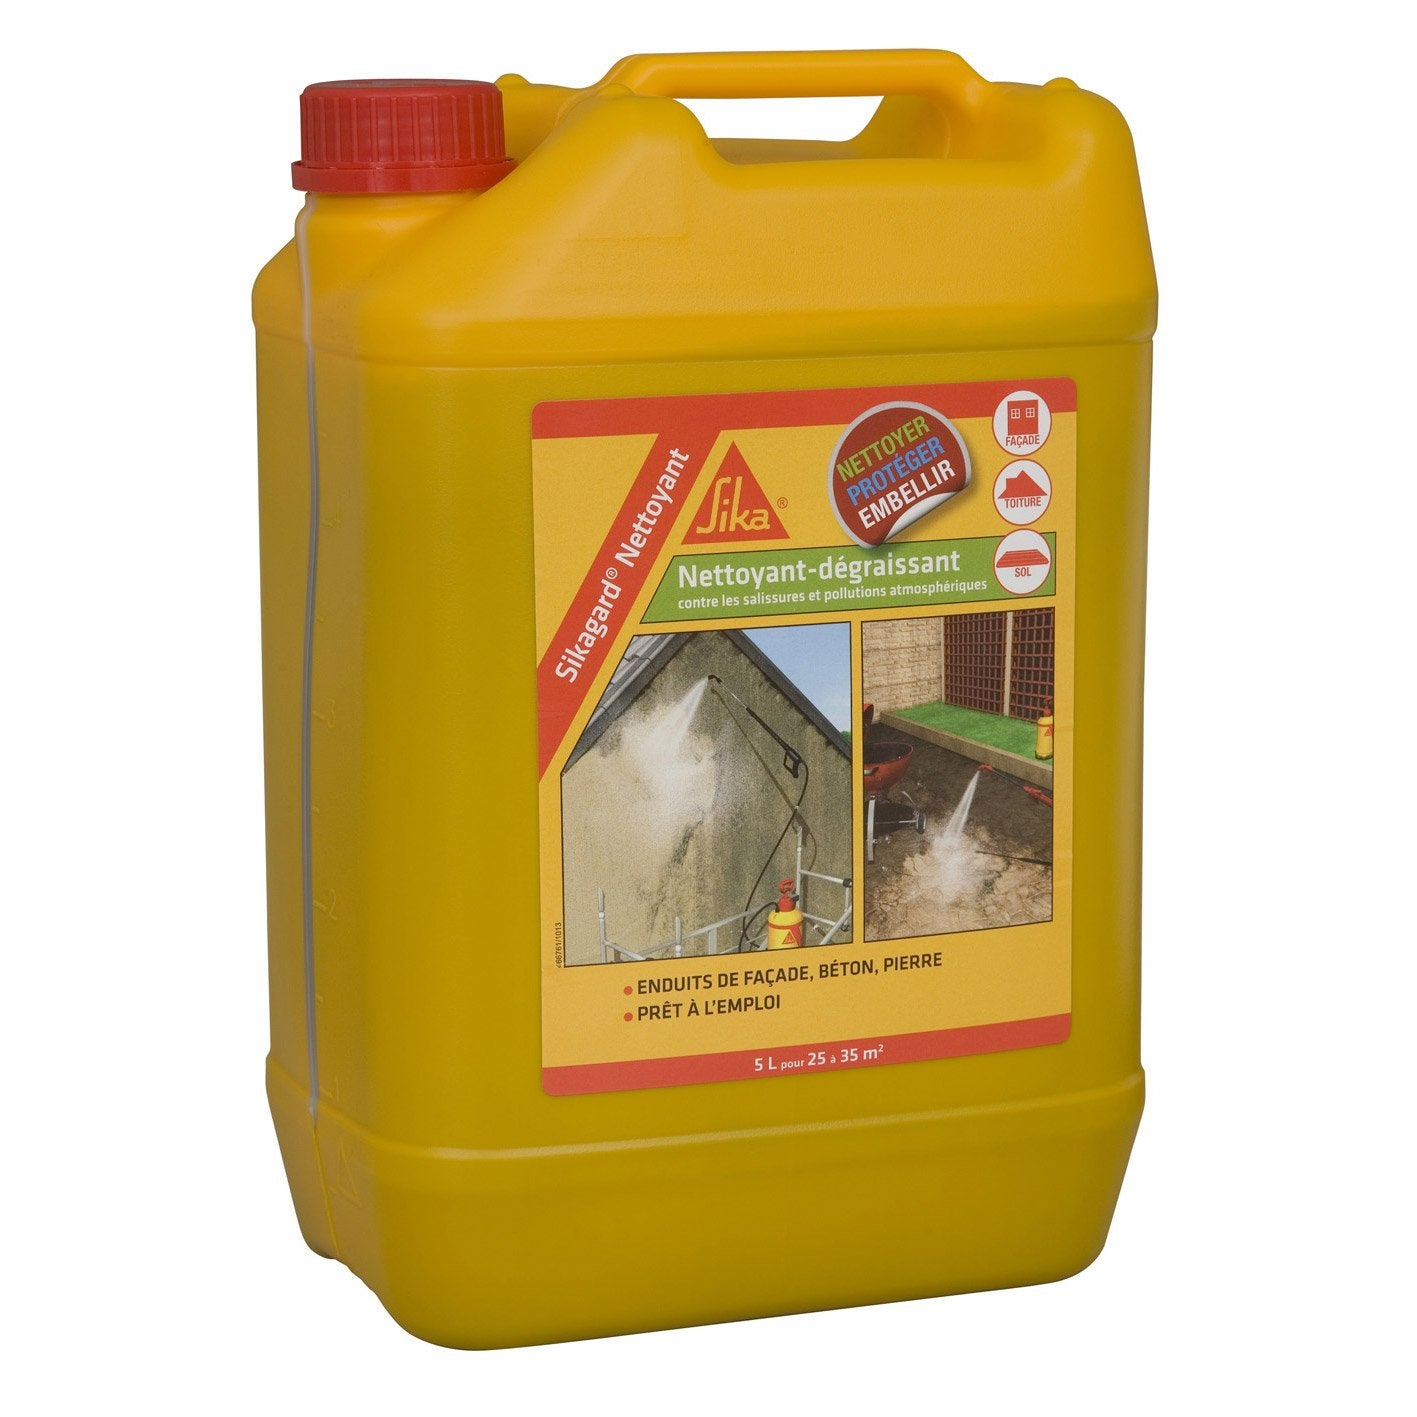 Nettoyant Desincrustant Sika Sikagard 5 L Incolore Leroy Merlin